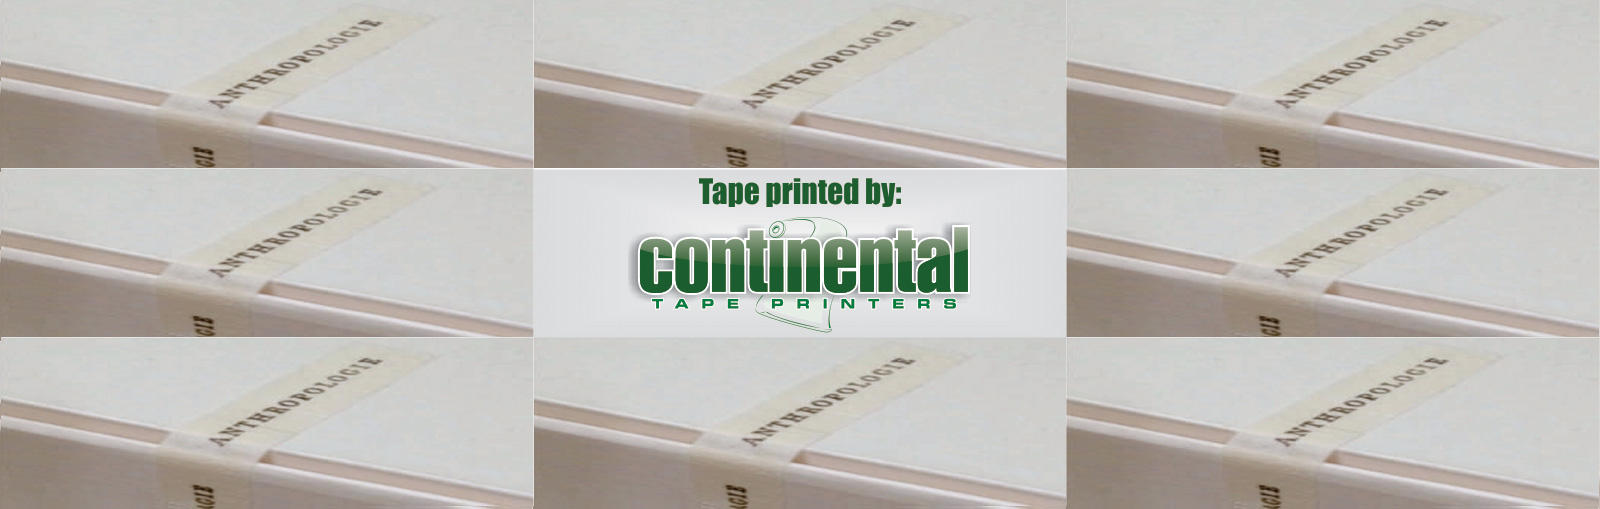 Printed Custom Tape - Continental Tape Printers - Custom Printed Packaging Tape